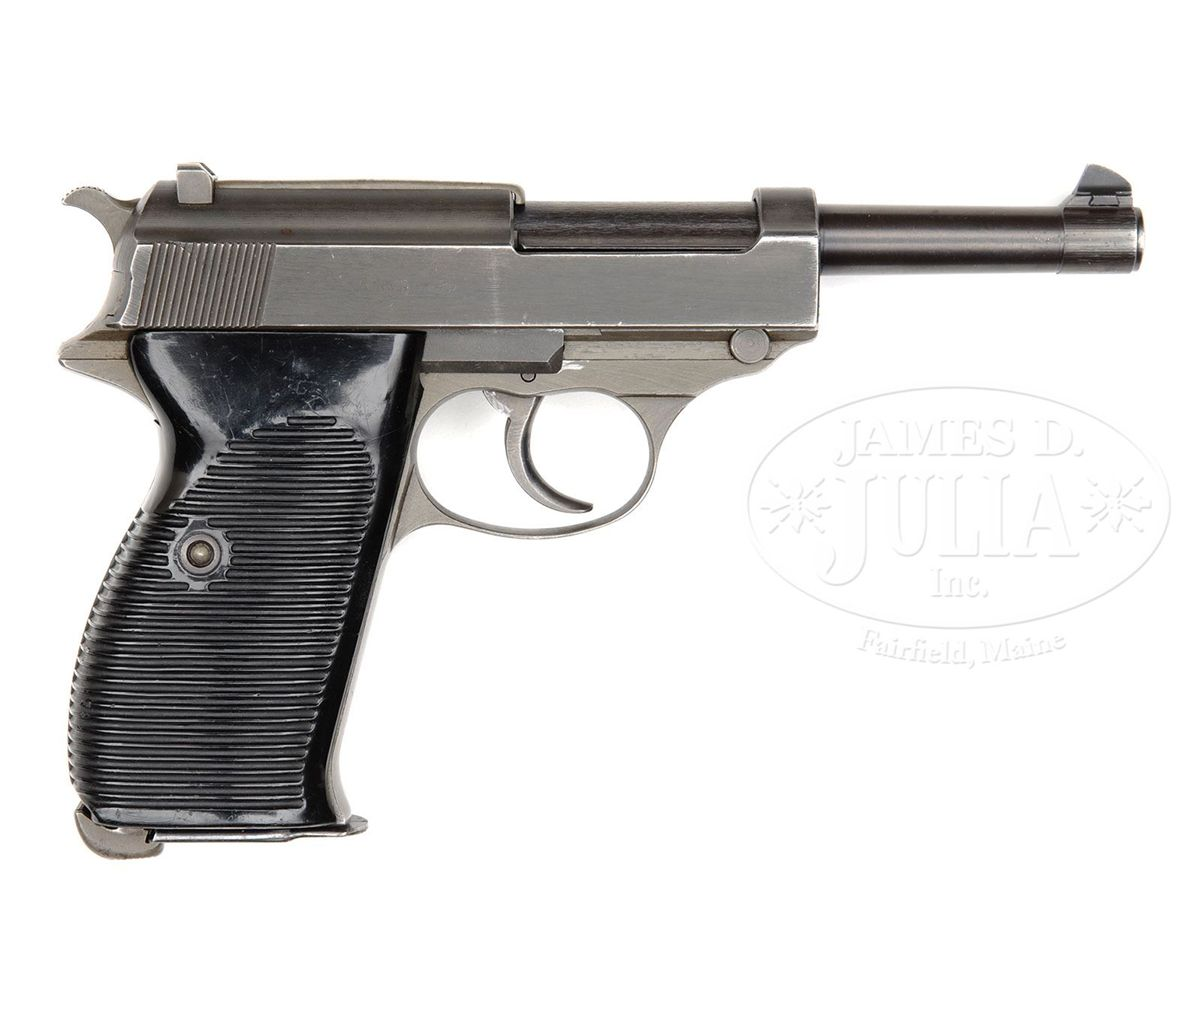 Walther p38 ac 44 dating 1